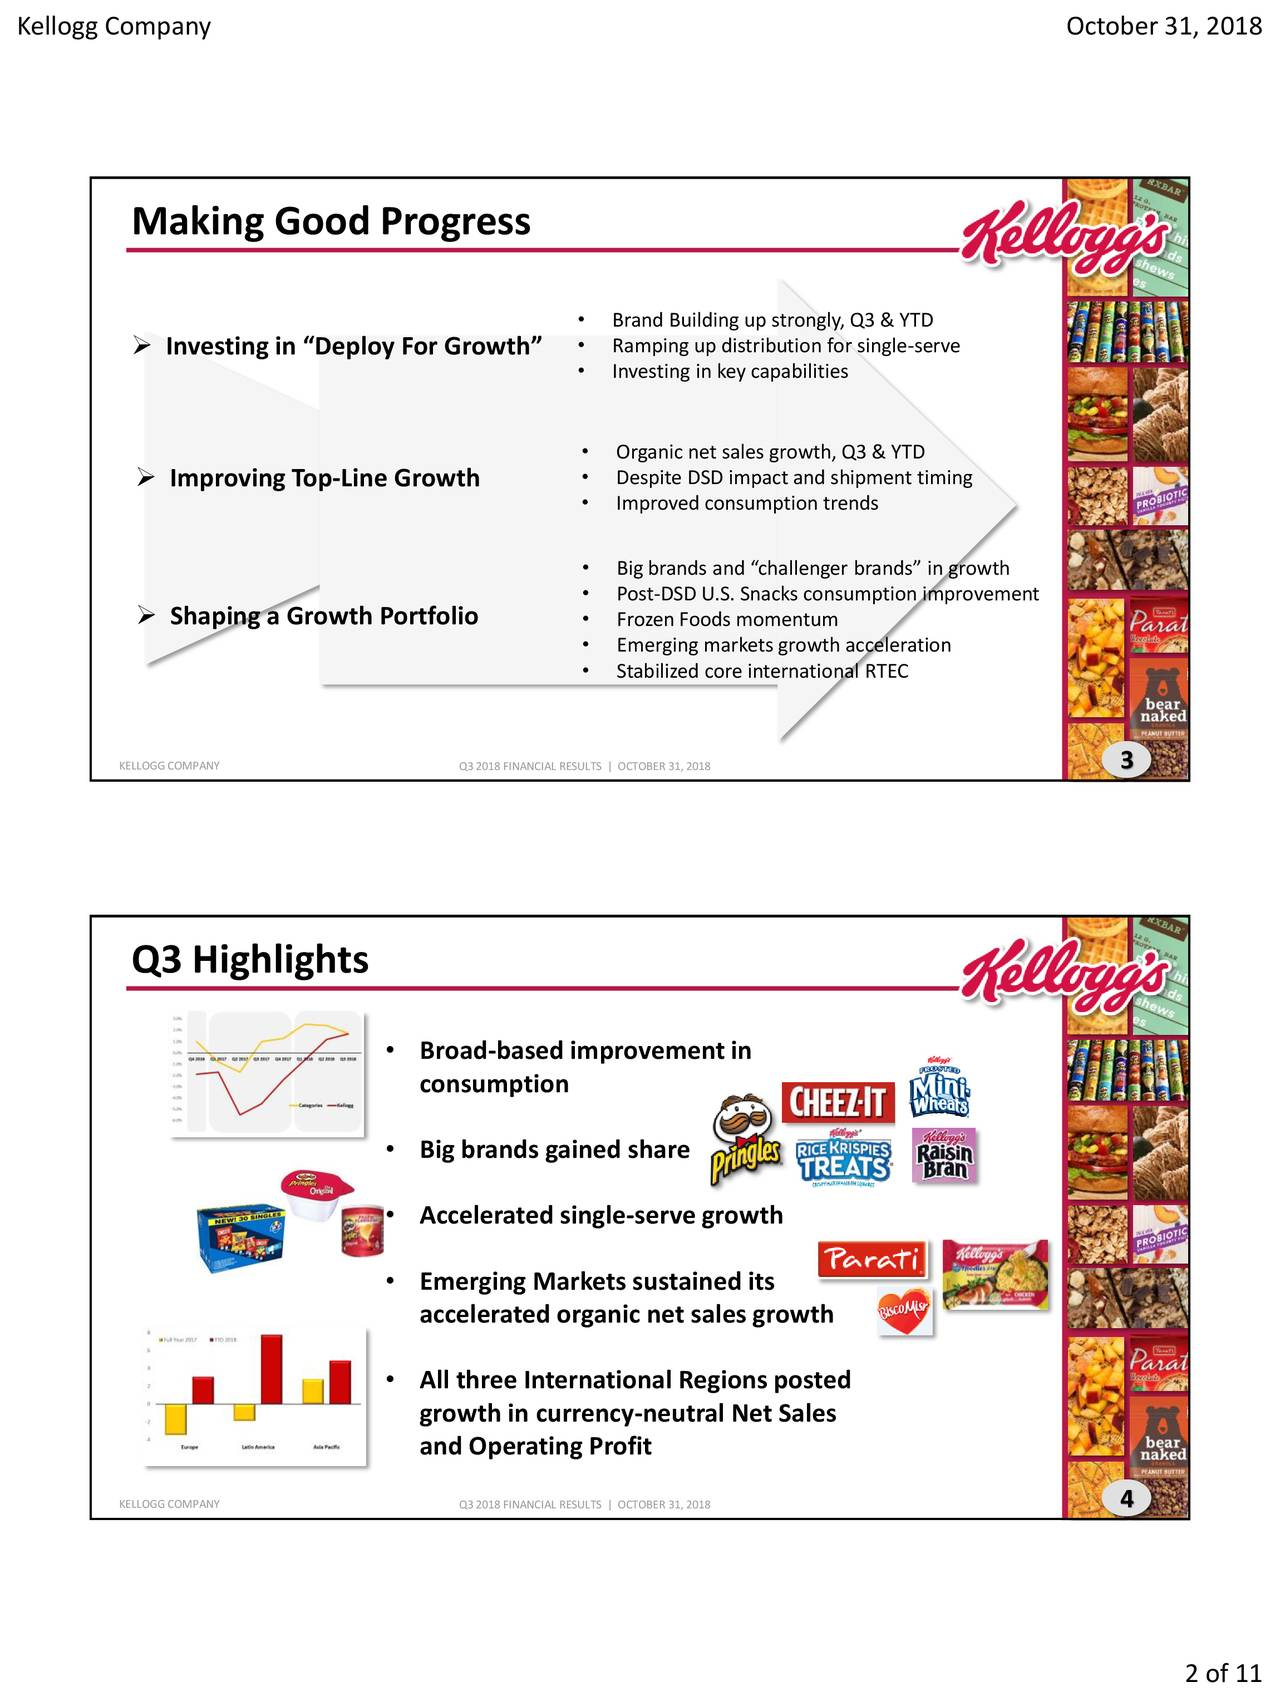 """Making Good Progress • Brand Building up strongly, Q3 & YTD  Investing in """"Deploy For Growth"""" • Ramping up distribution for single-serve • Investing in key capabilities • Organic net sales growth, Q3 & YTD  Improving Top-Line Growth • Despite DSD impact and shipment timing • Improved consumption trends • Big brands and """"challenger brands"""" in growth • Post-DSD U.S. Snacks consumption improvement  Shaping a Growth Portfolio • Frozen Foods momentum • Emerging markets growth acceleration • Stabilized core international RTEC KELLOGGCOMPANY Q3 2018 FINANCIAL RESULTS 